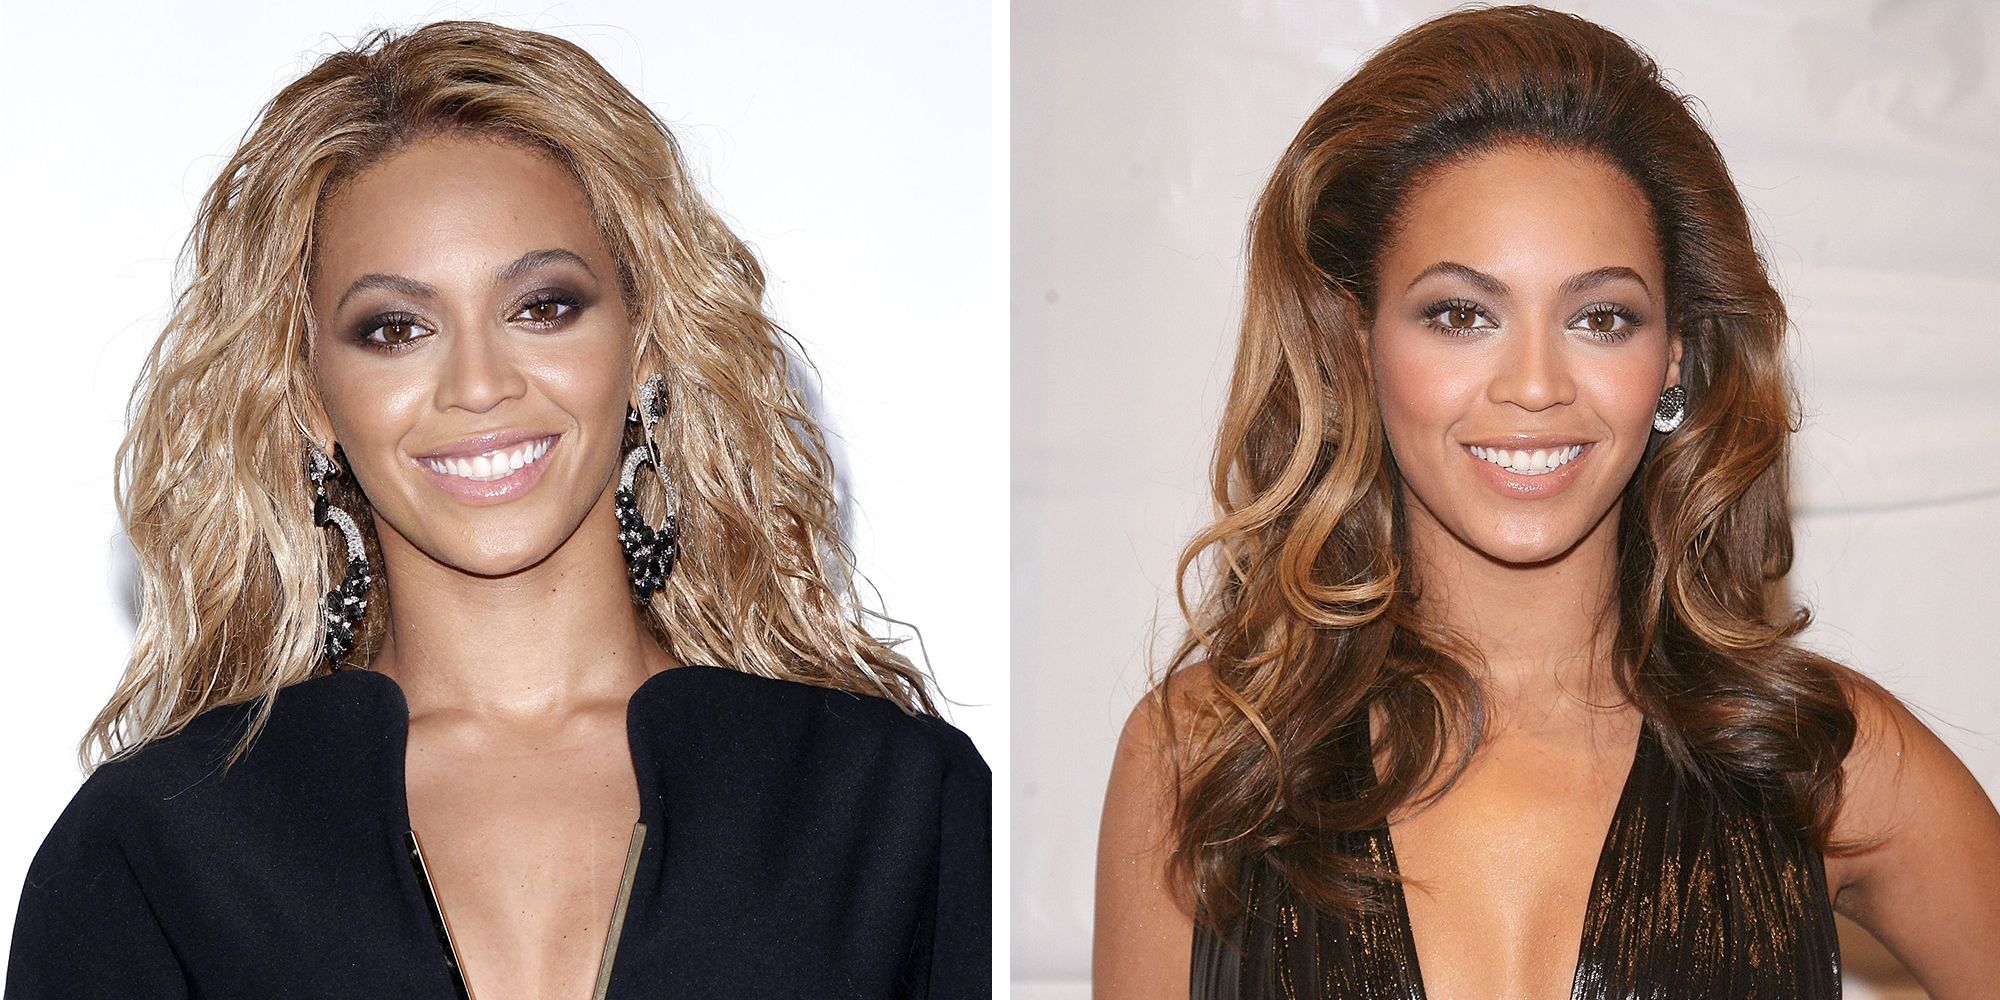 27 Celebrities With Blonde Vs Brown Hair